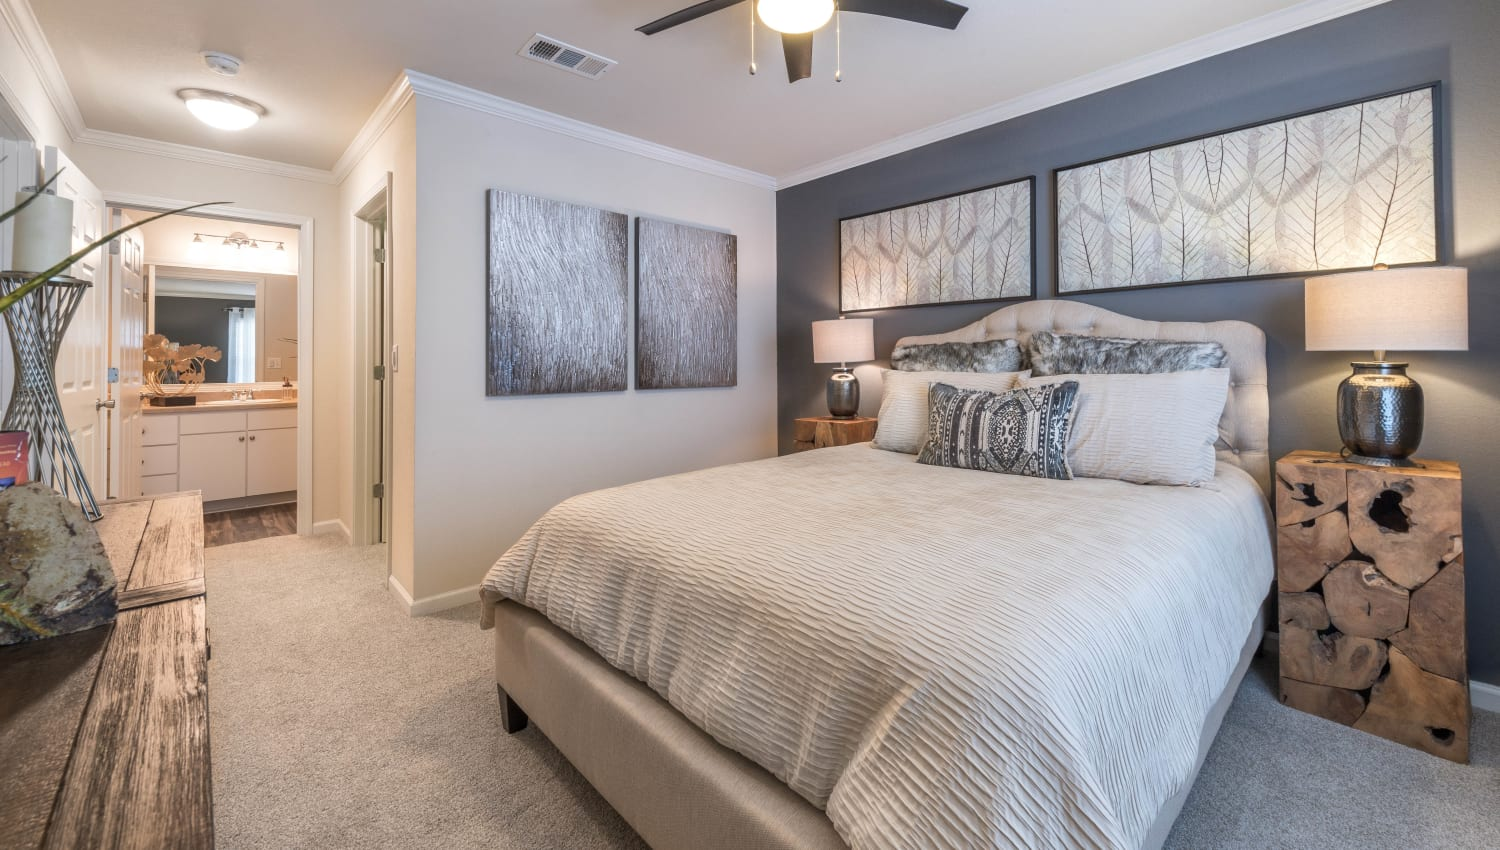 Spacious master bedroom with an en suite bathroom in a model home at Olympus Hillwood in Murfreesboro, Tennessee